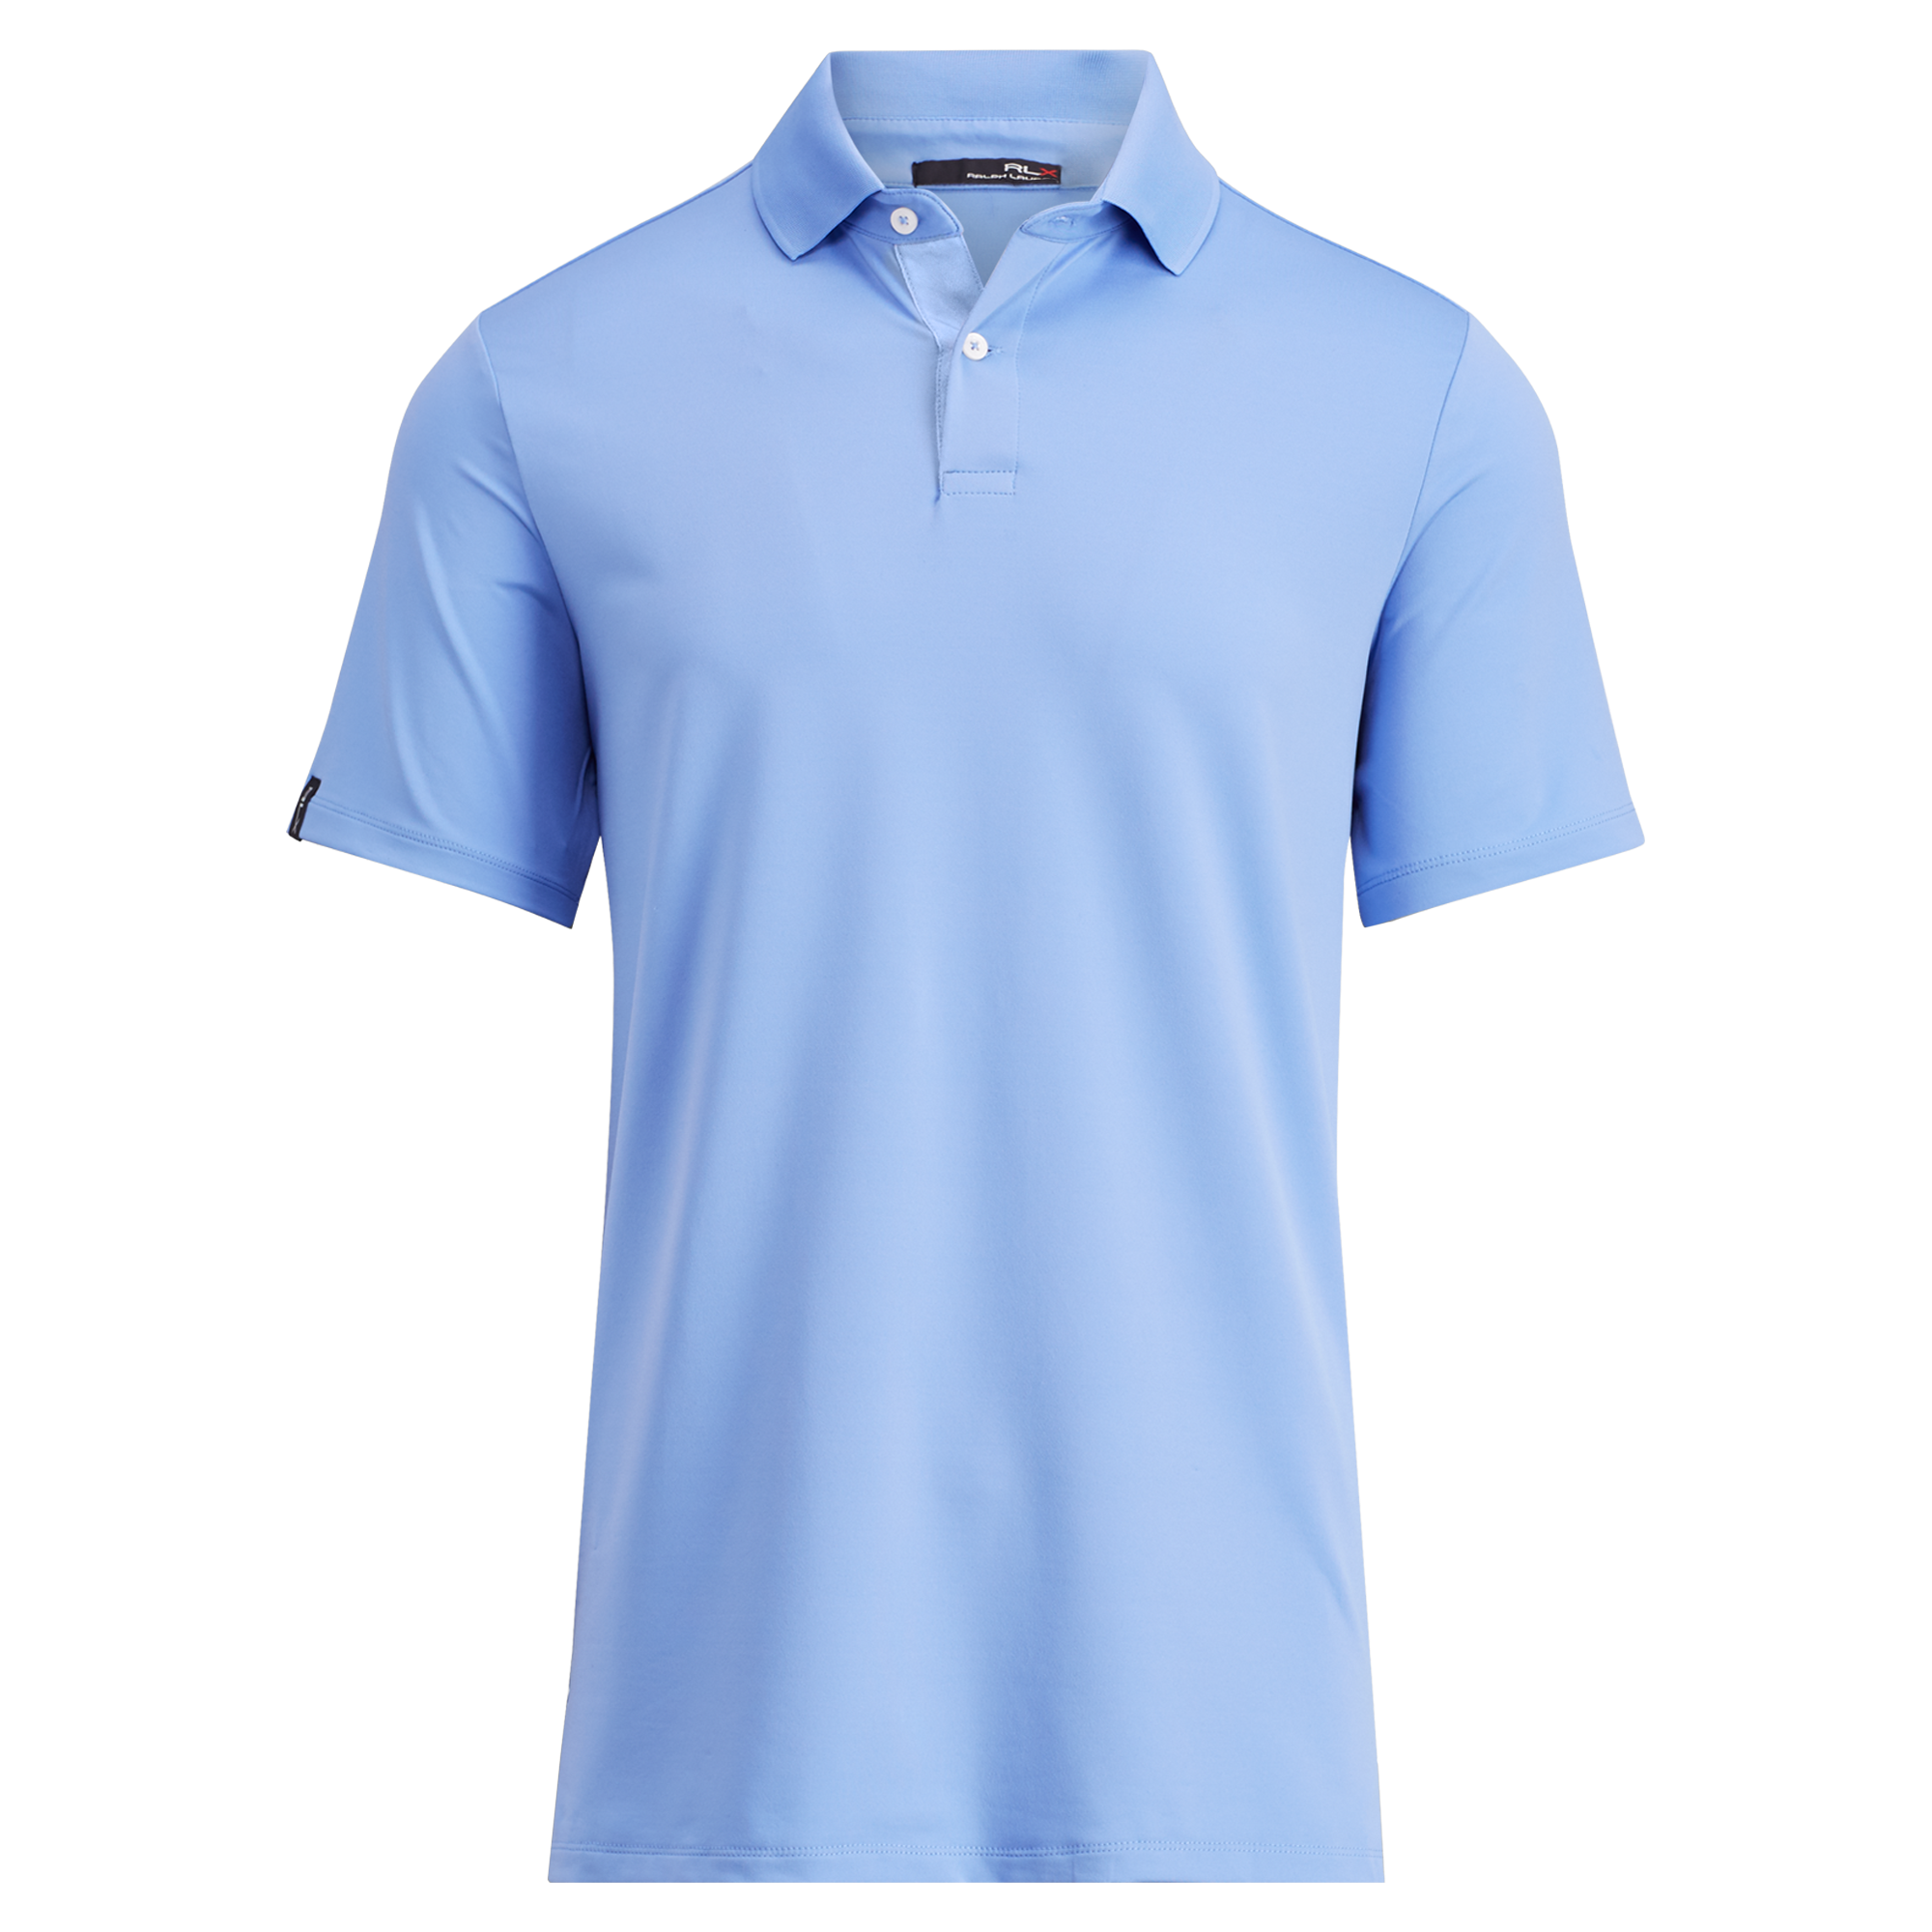 Best Mens Polo Shirts 2021 RLX Golf Active Performance Polo | Performance polos, Mens polo